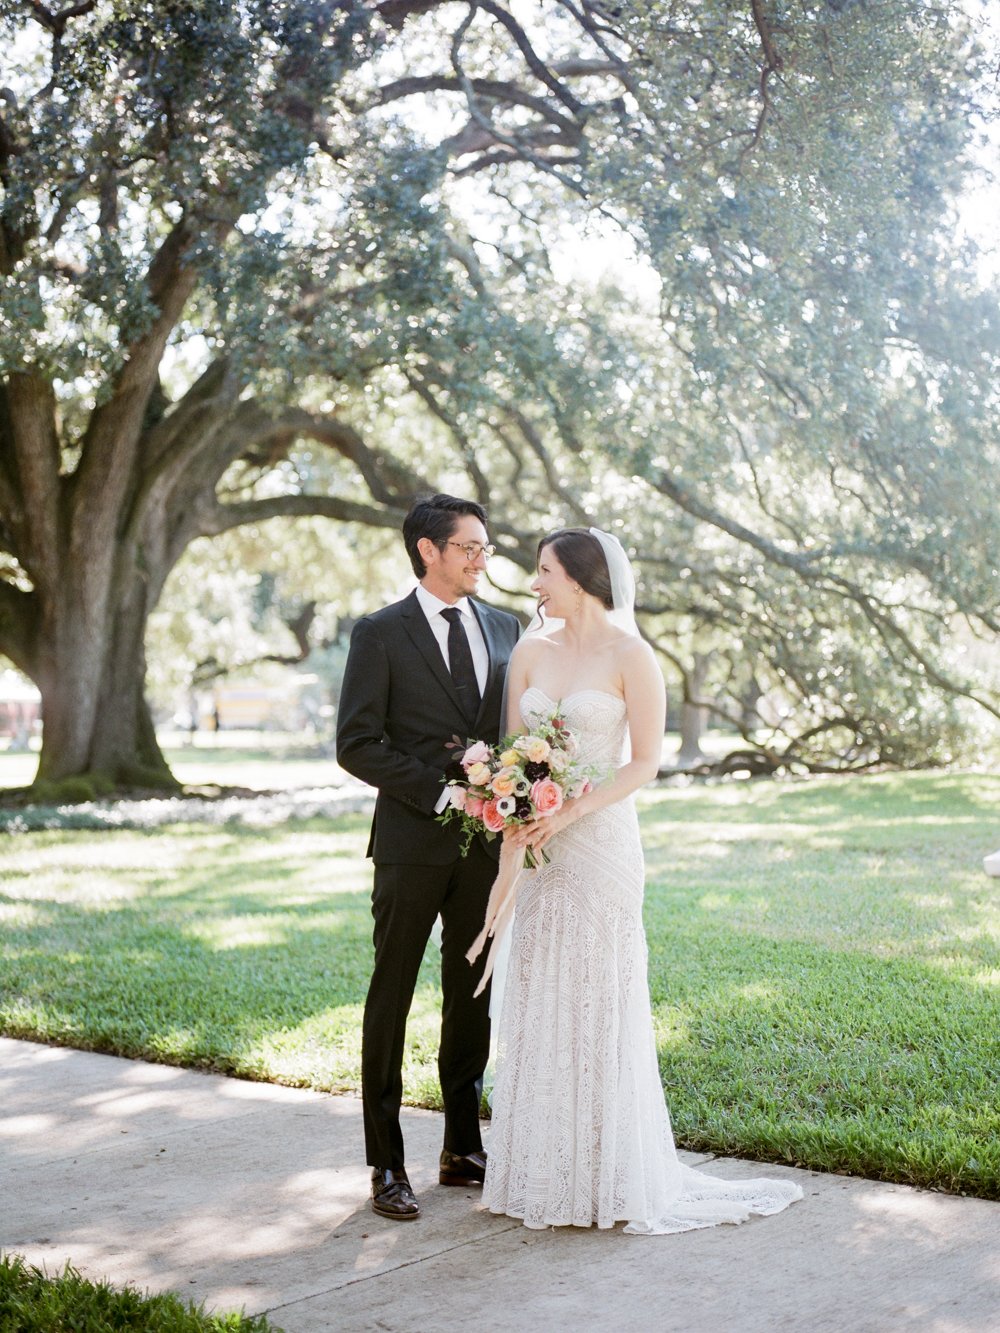 fall wedding at rothko chapel- houston wedding photographer-christine gosch - film photographer - elopement photographer- intimate wedding - lovely bride wedding gown-13.jpg